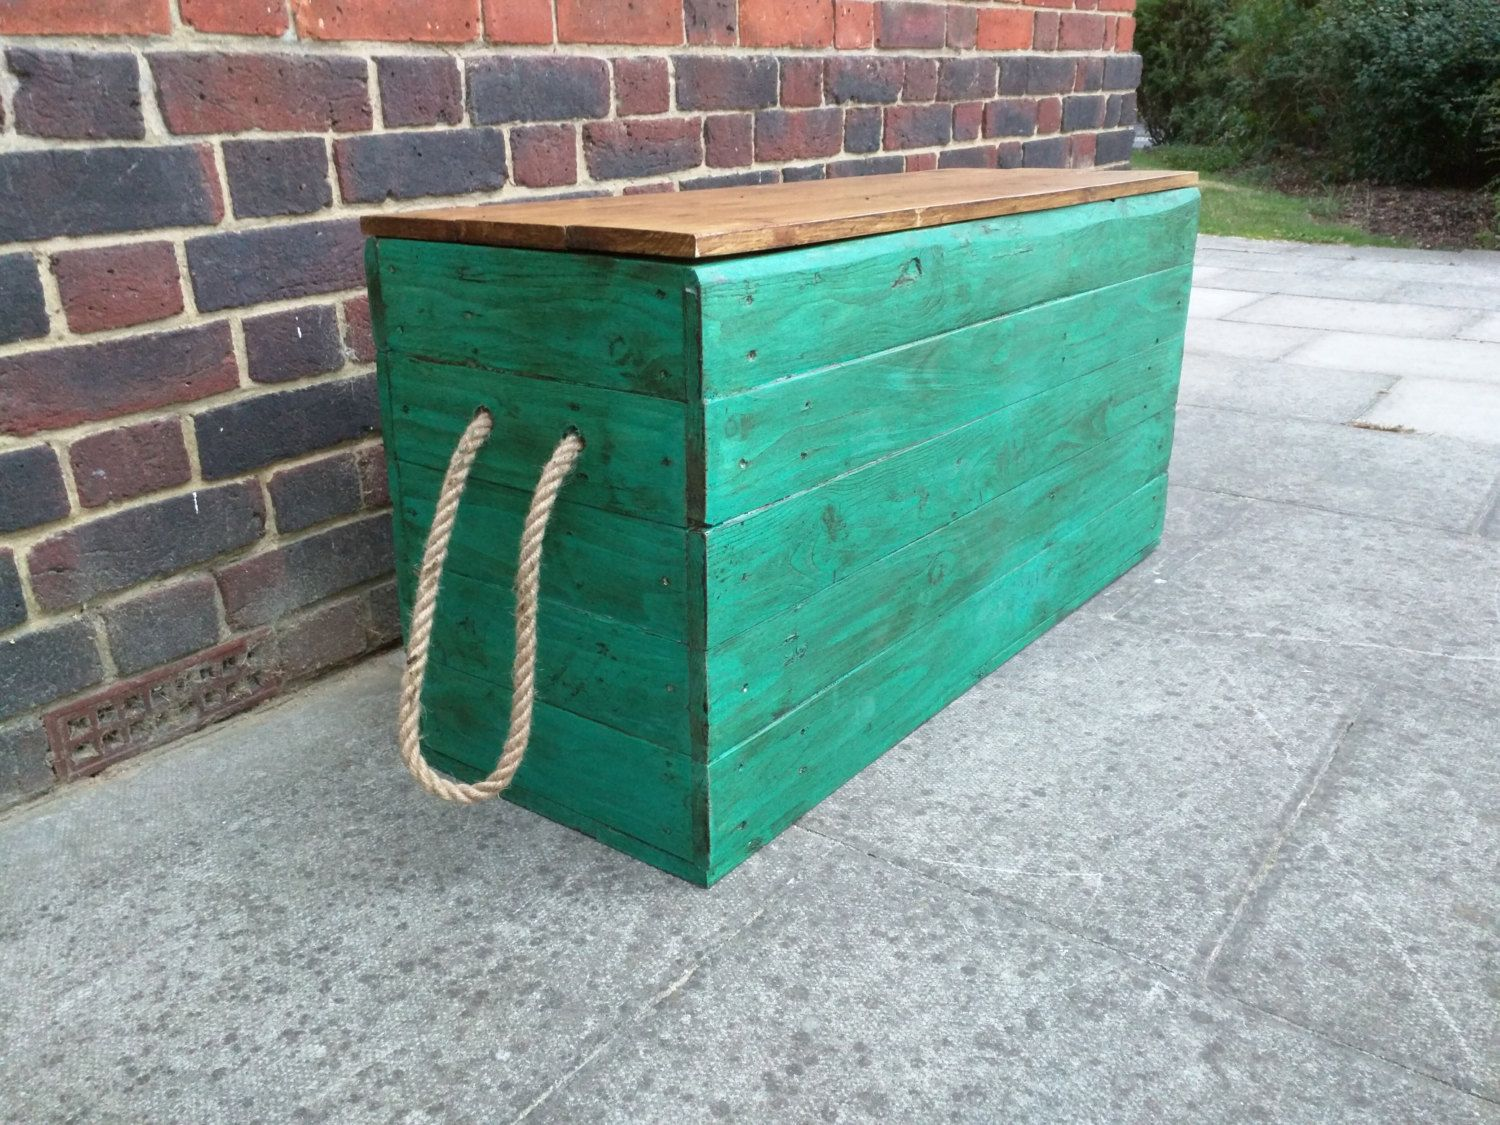 Rustic Storage Trunk Chest Hope Box Toy Box Handmade from Reclaimed Wood by TimberWolfFurniture on Etsy